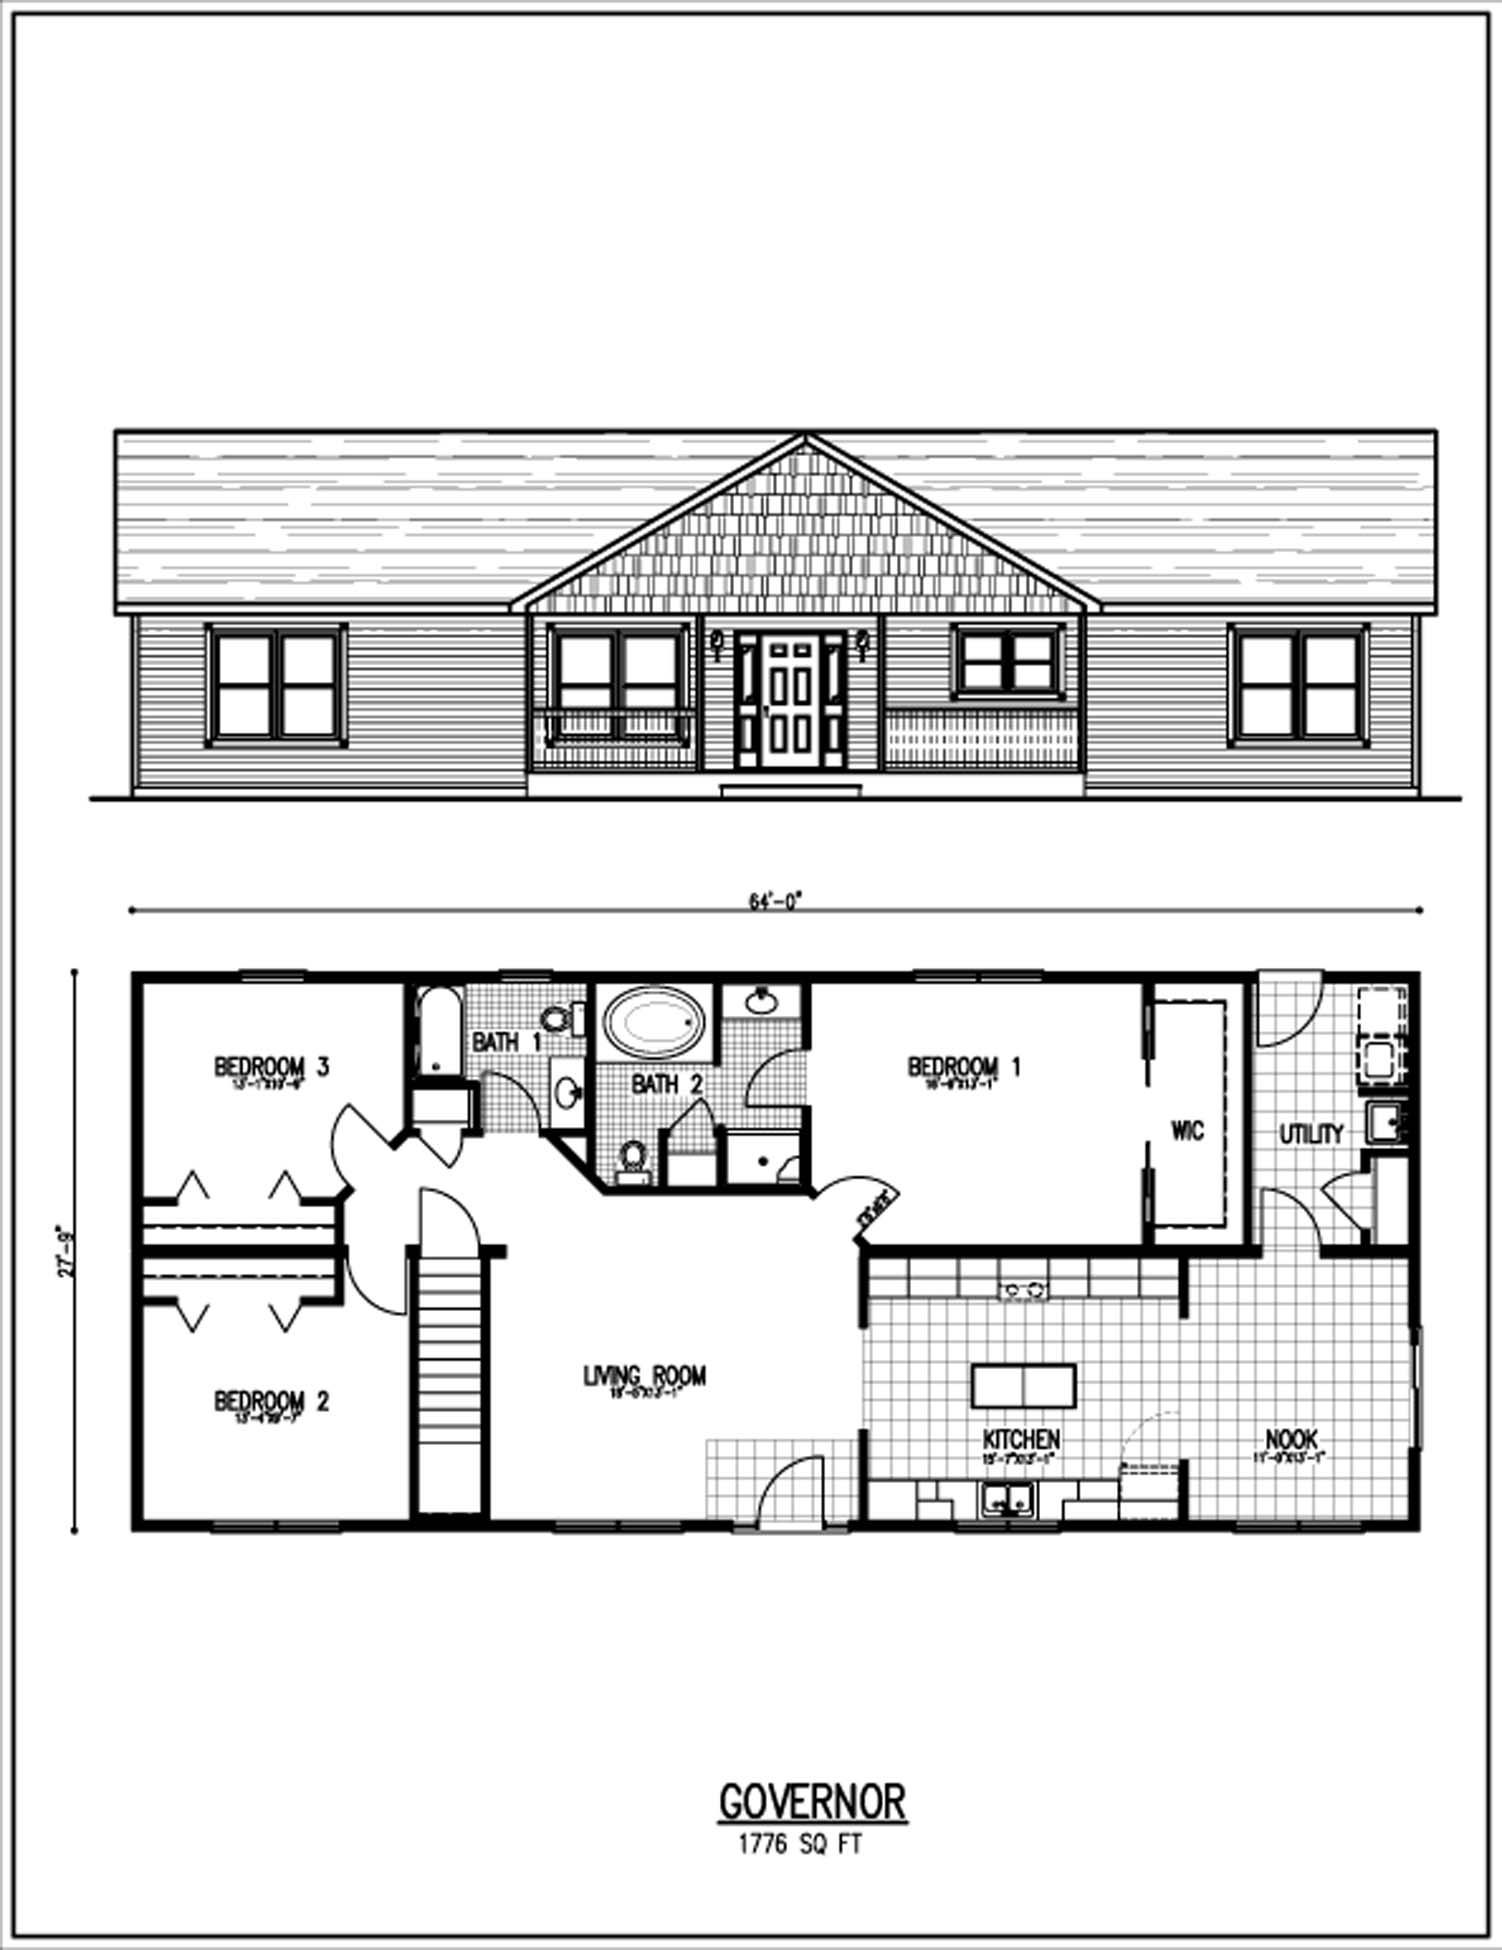 floor plans by shawam082498 on pinterest floor plans